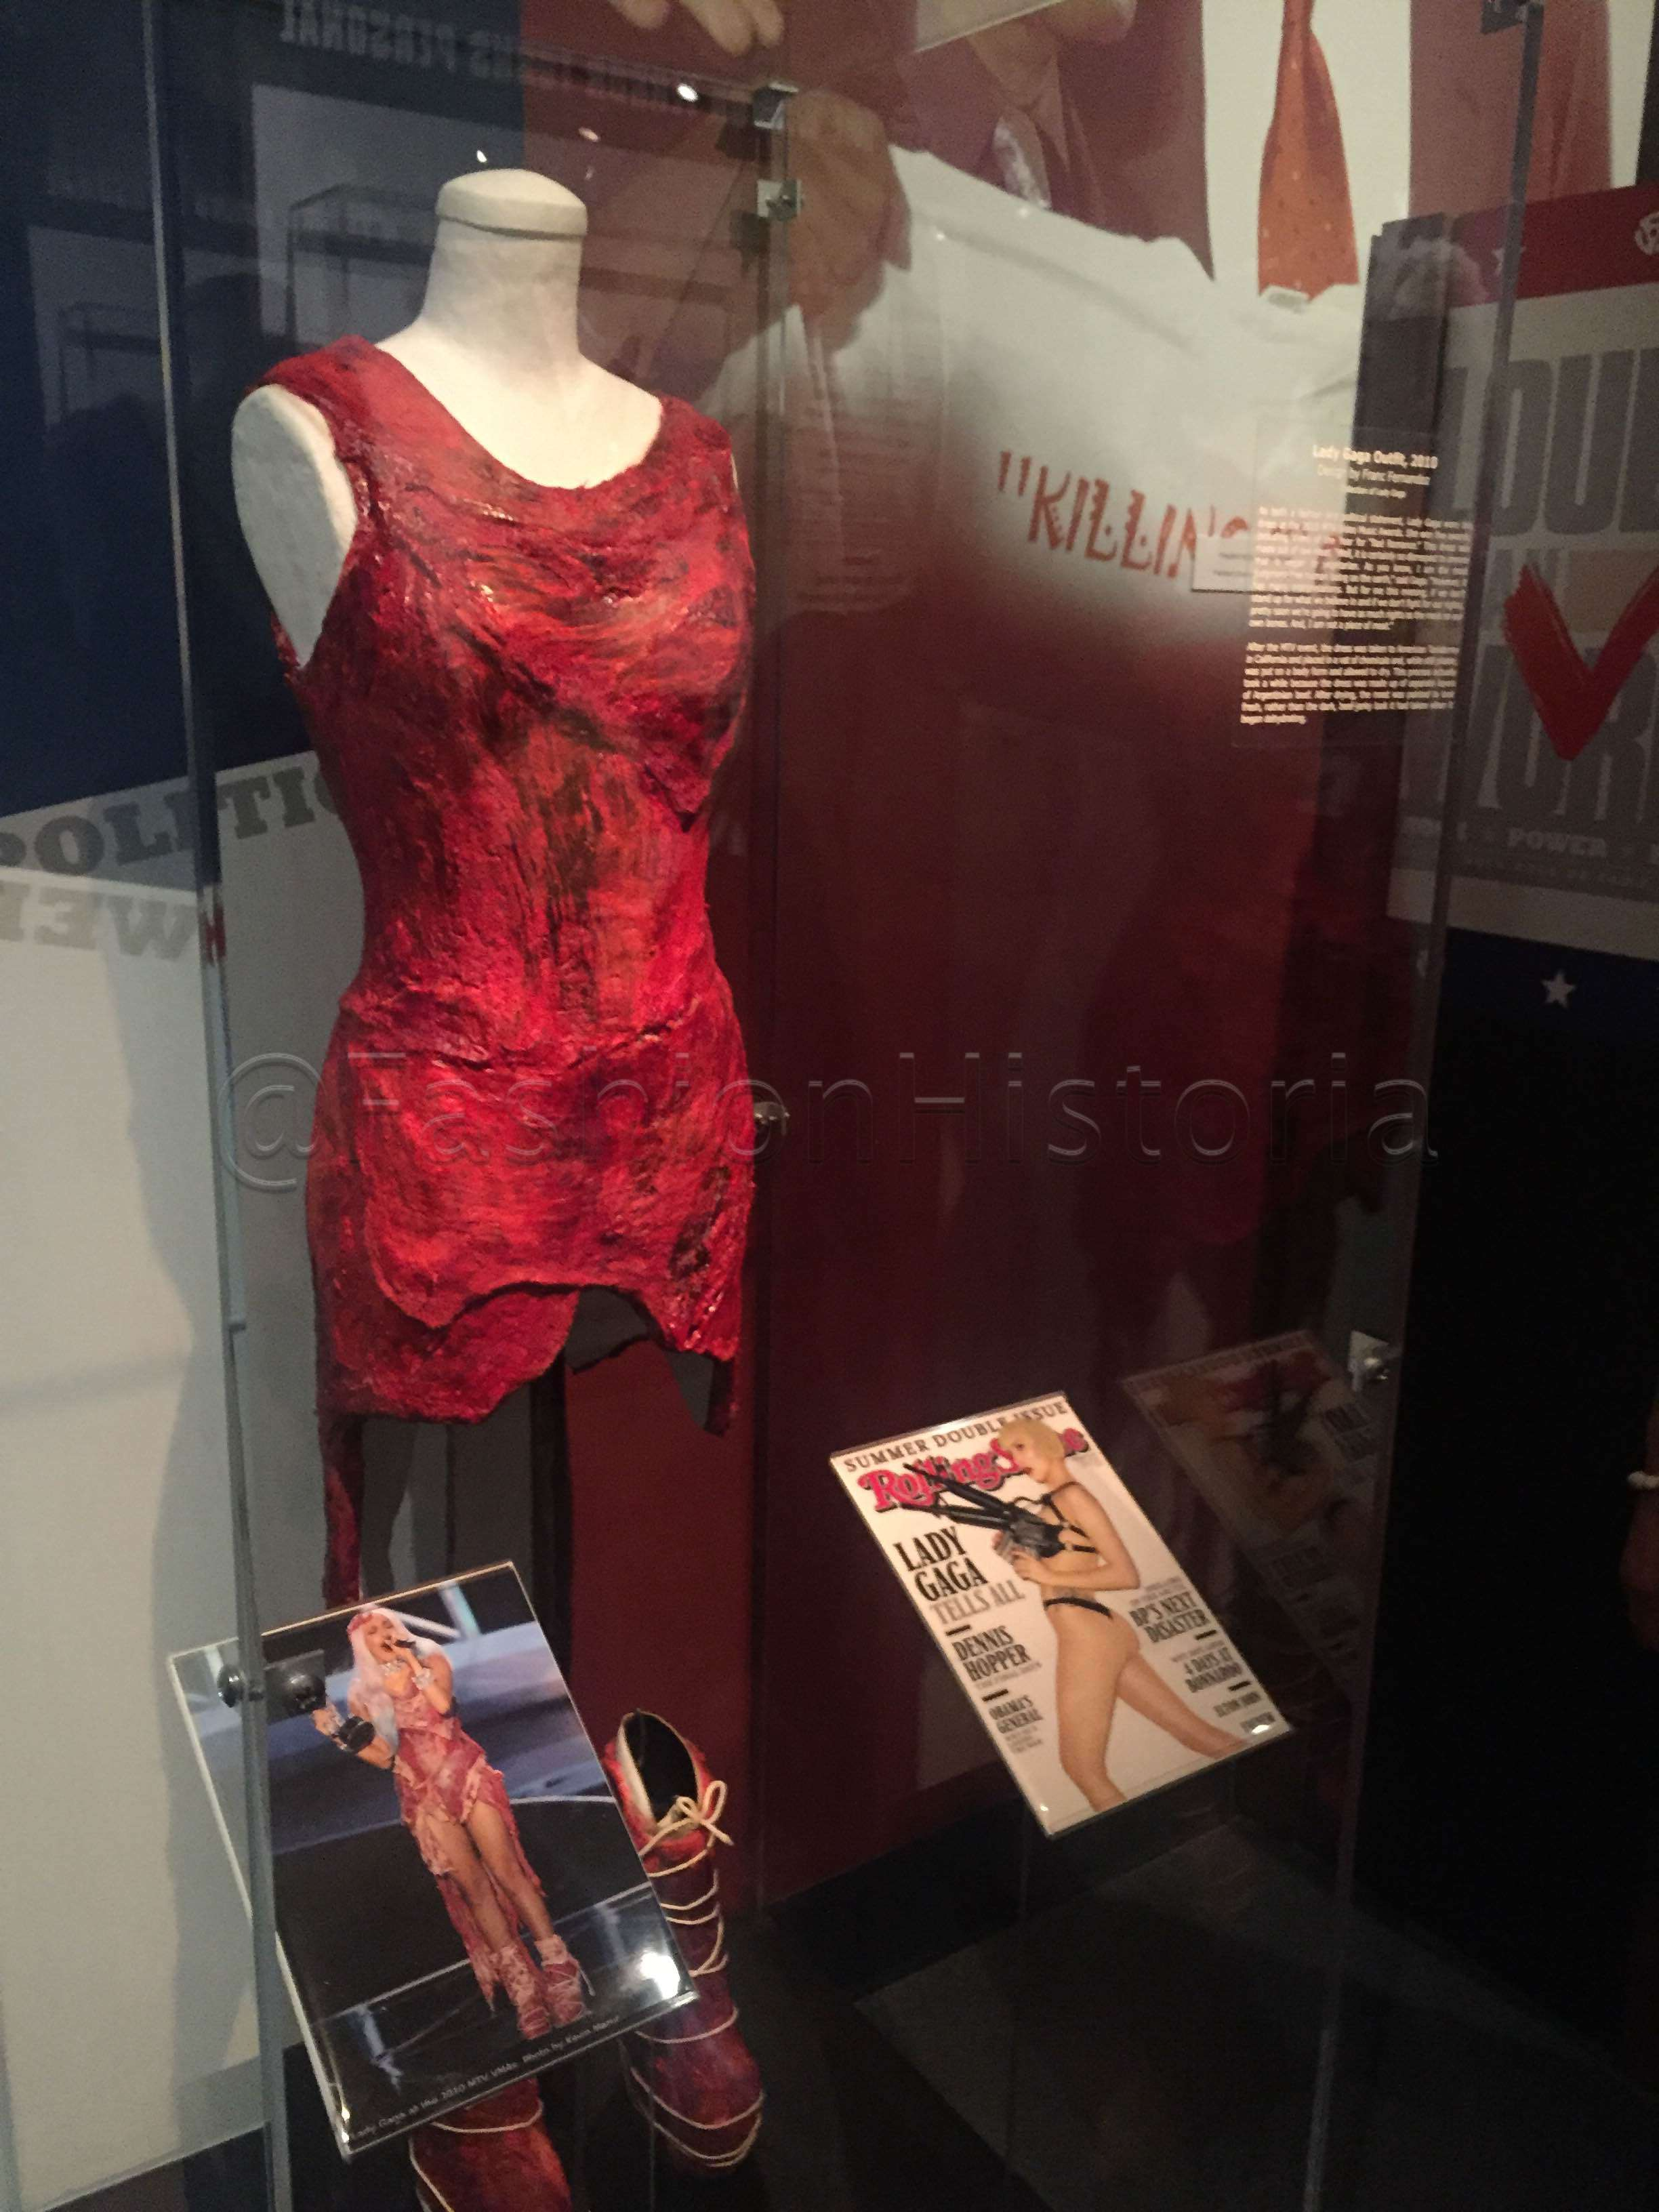 Lady Gaga's meat dress designed by Franc Fernandez